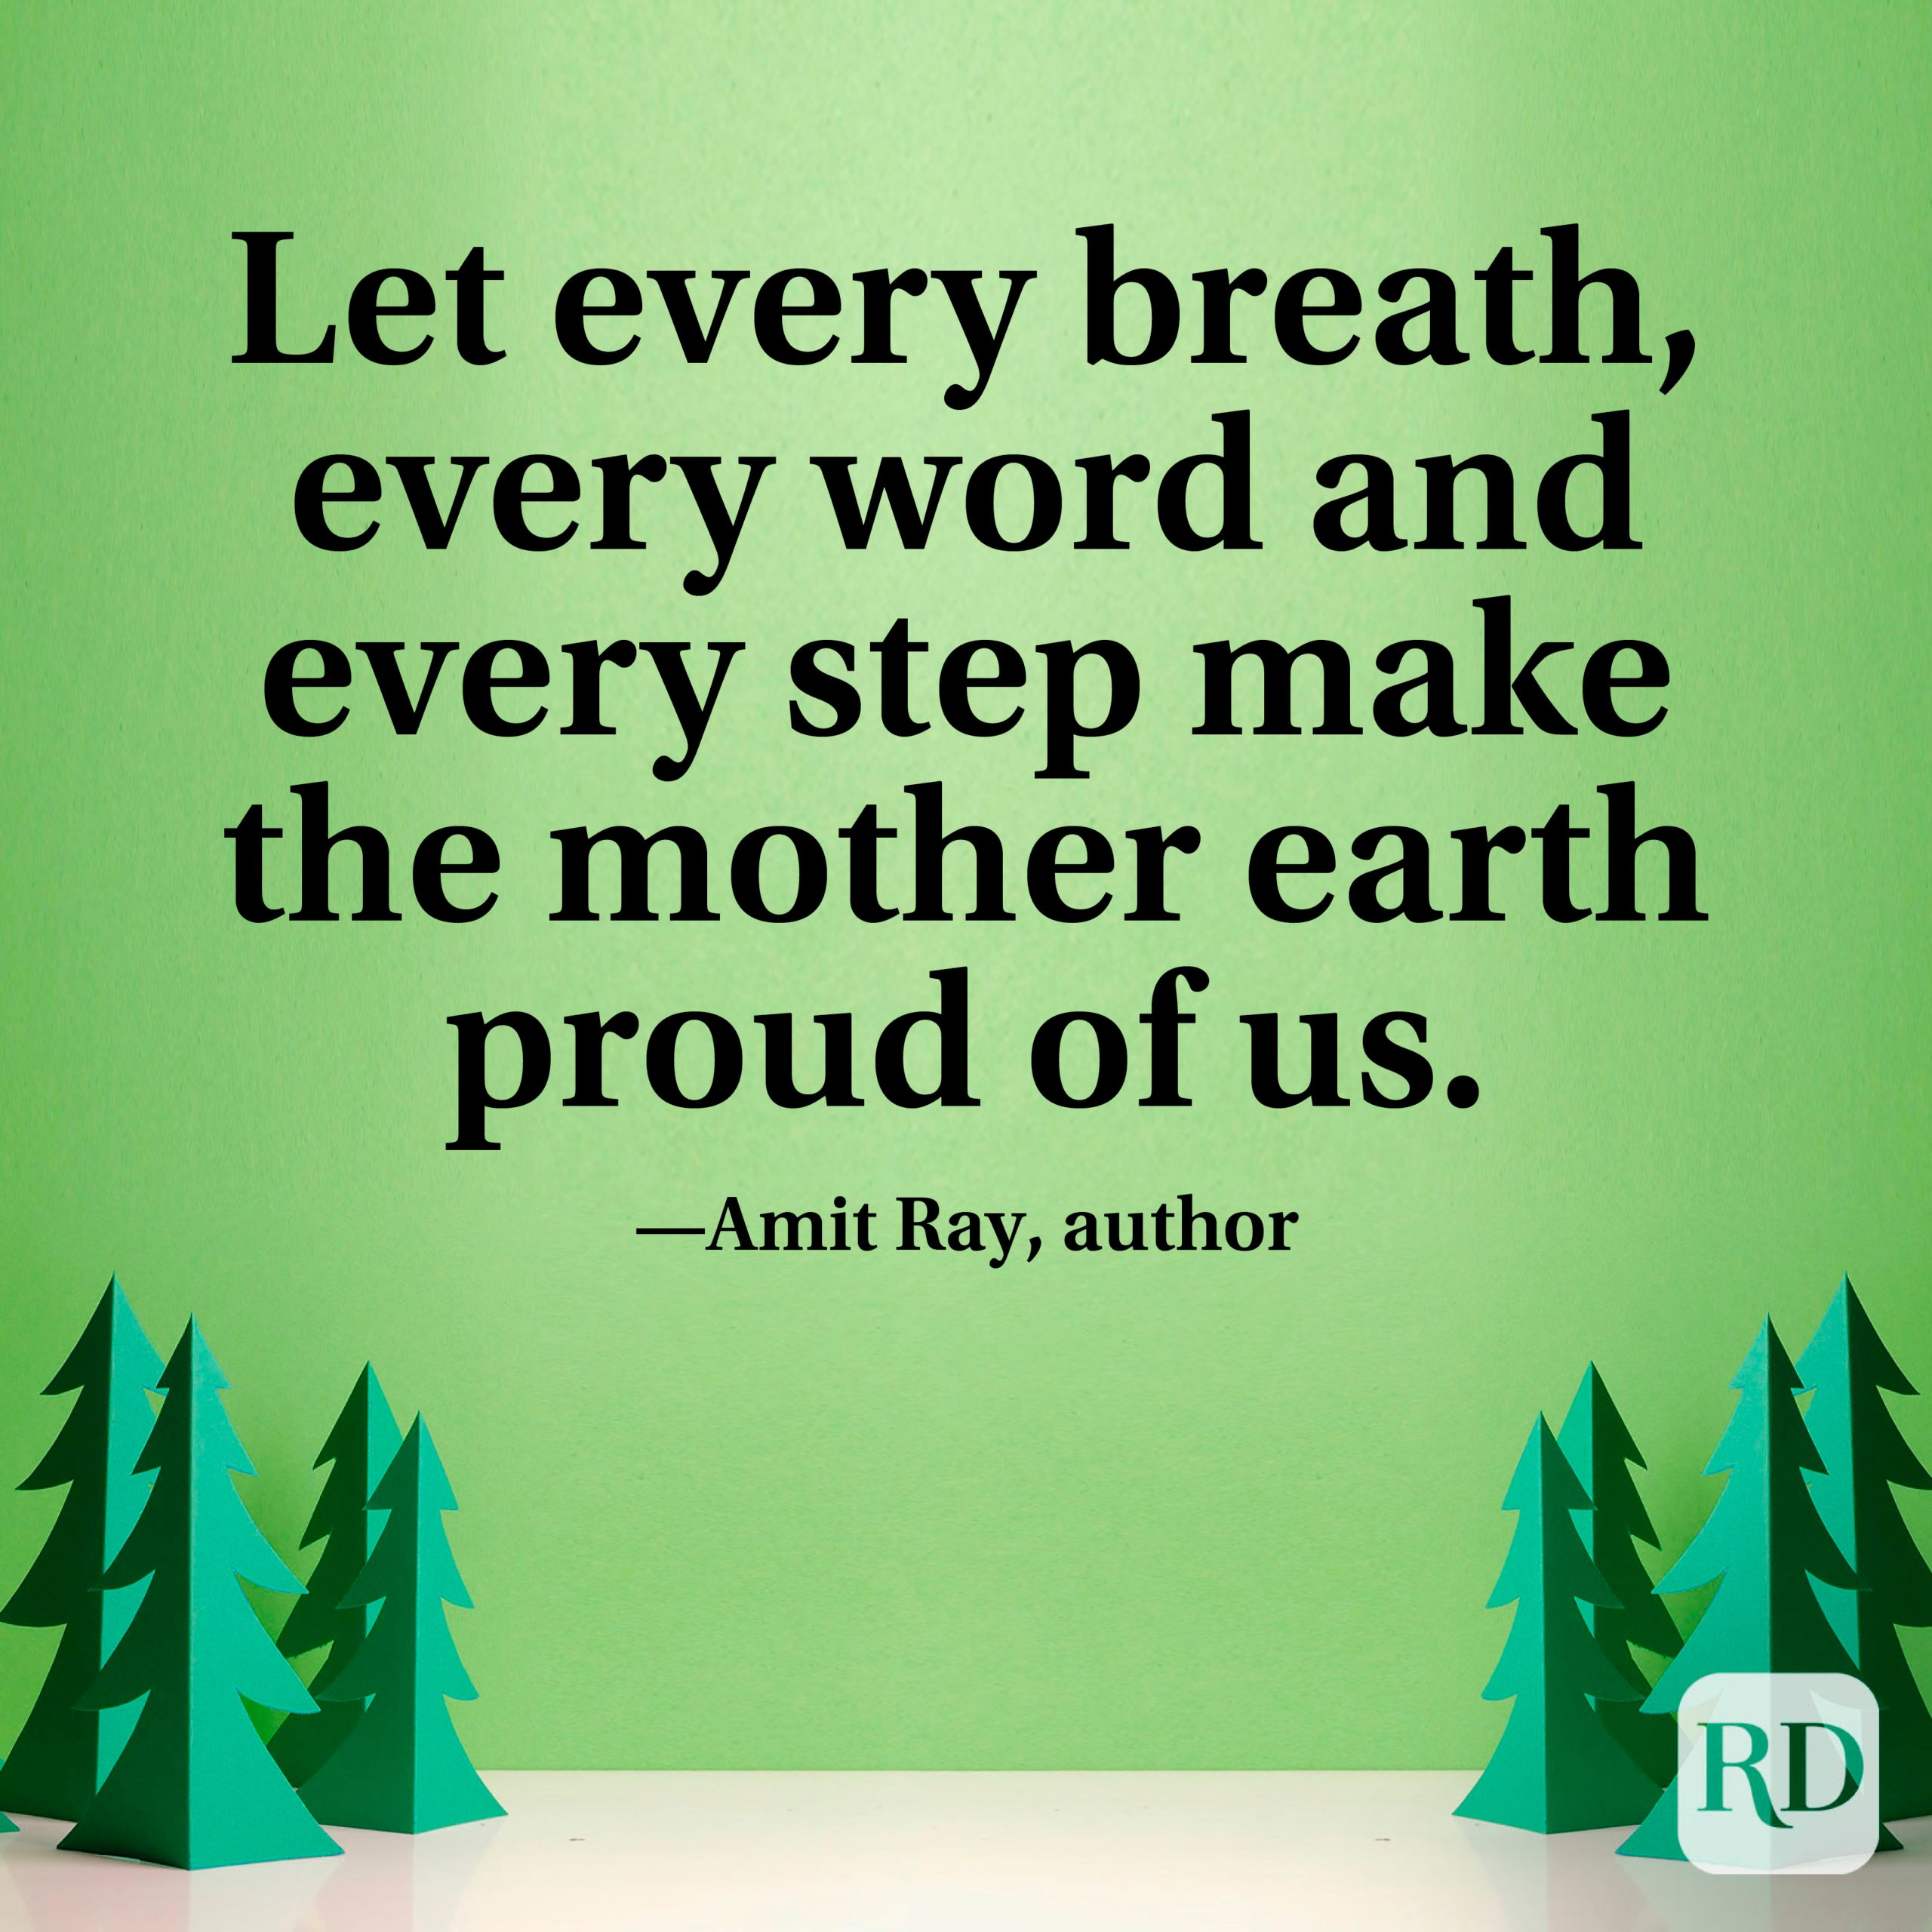 """""""Let every breath, every word and every step make the mother earth proud of us."""" —Amit Ray, author."""